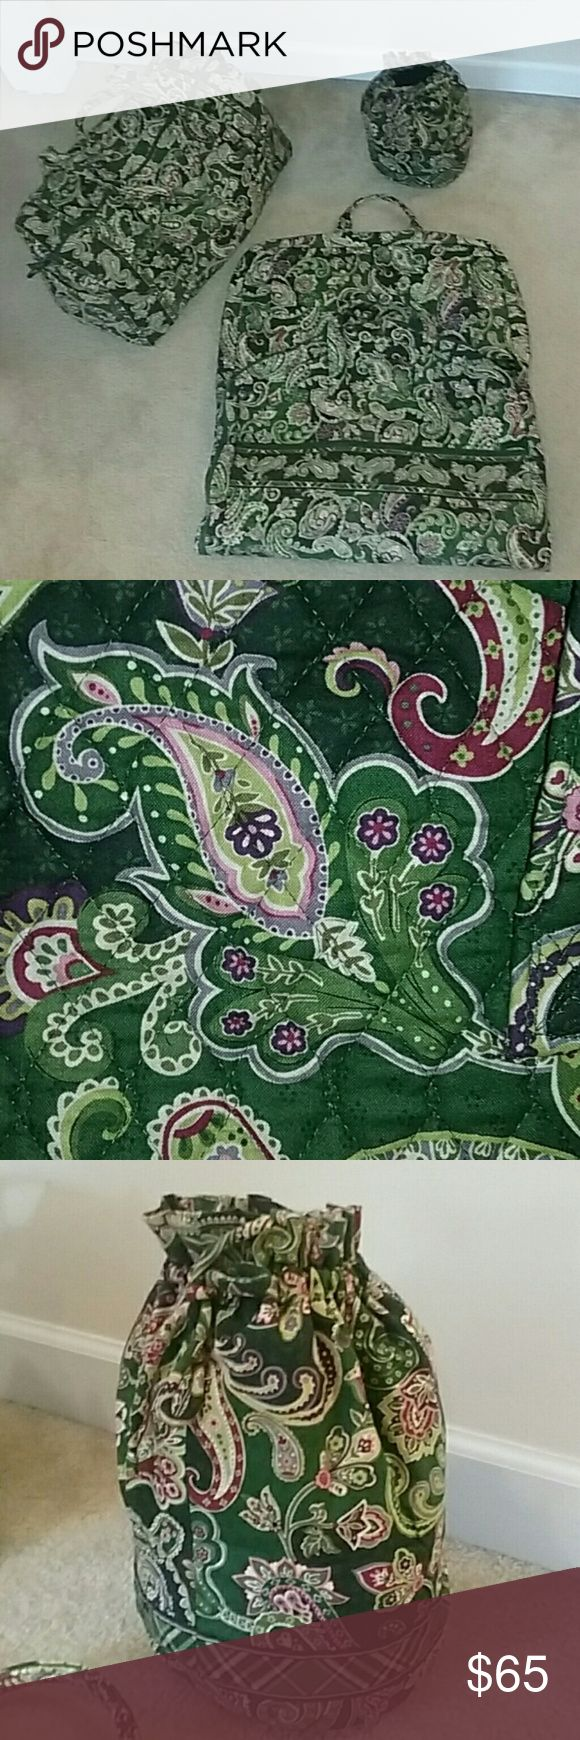 Vera Bradley Travel Set- 3 Piece Green paisley print soft luggage that includes:  garment bag, large duffle and toiletry bag.  Gently used, great shape and a steal of a deal. Vera Bradley Accessories